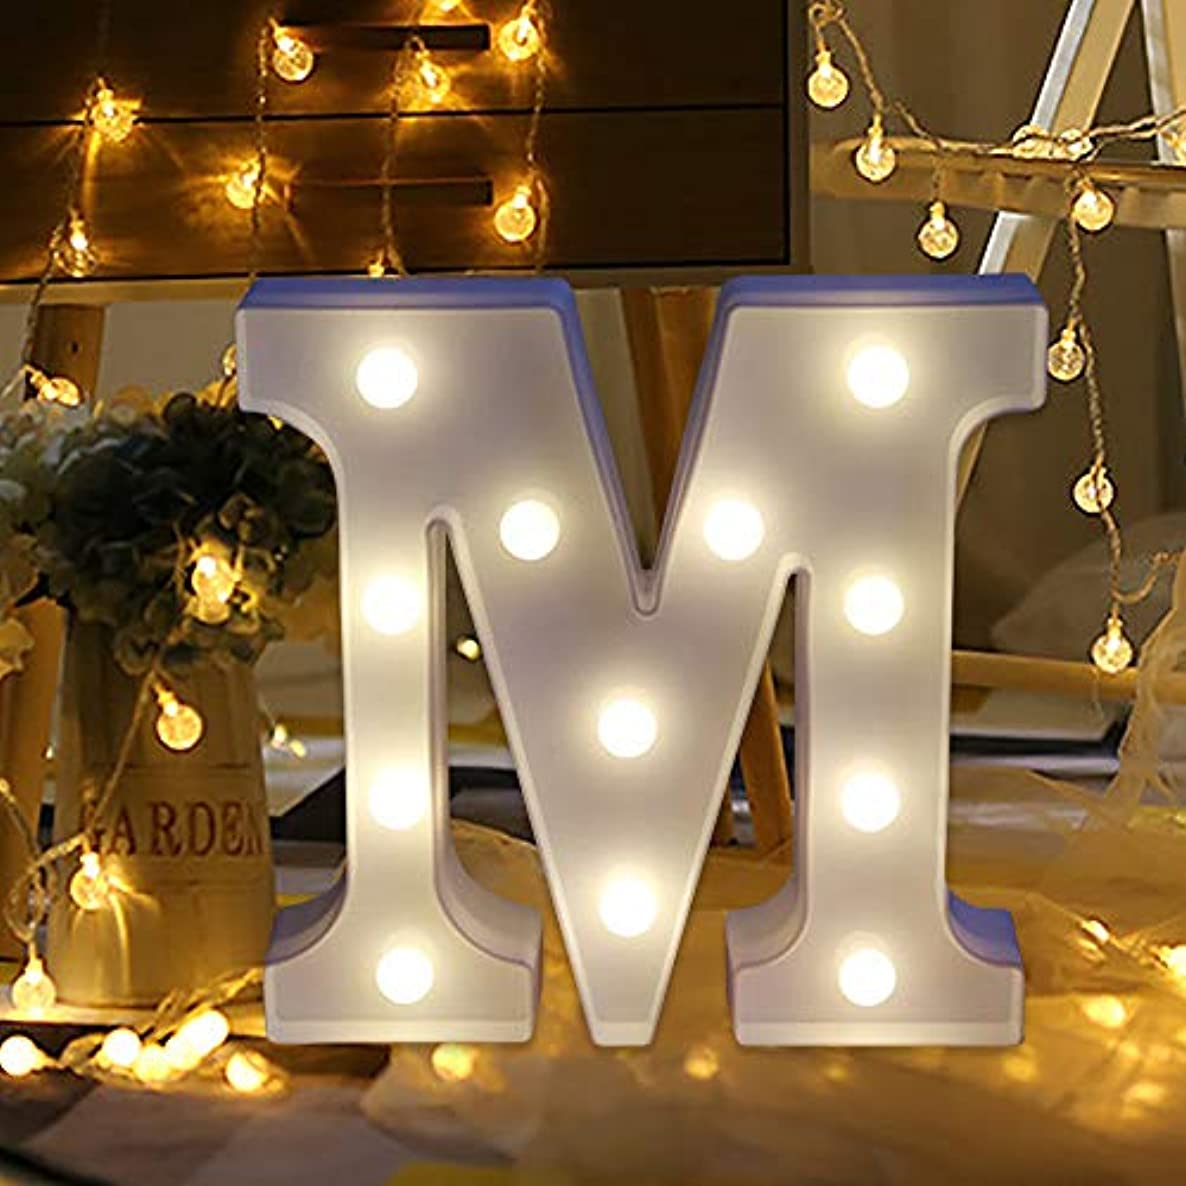 Cuekondy Clearance!Remote Control Alphabet LED Letter Lights Light Up White Plastic Letters Standing Hanging for Home Party Wedding Halloween Christmas Festival Decoration (M, 22cm/8.7